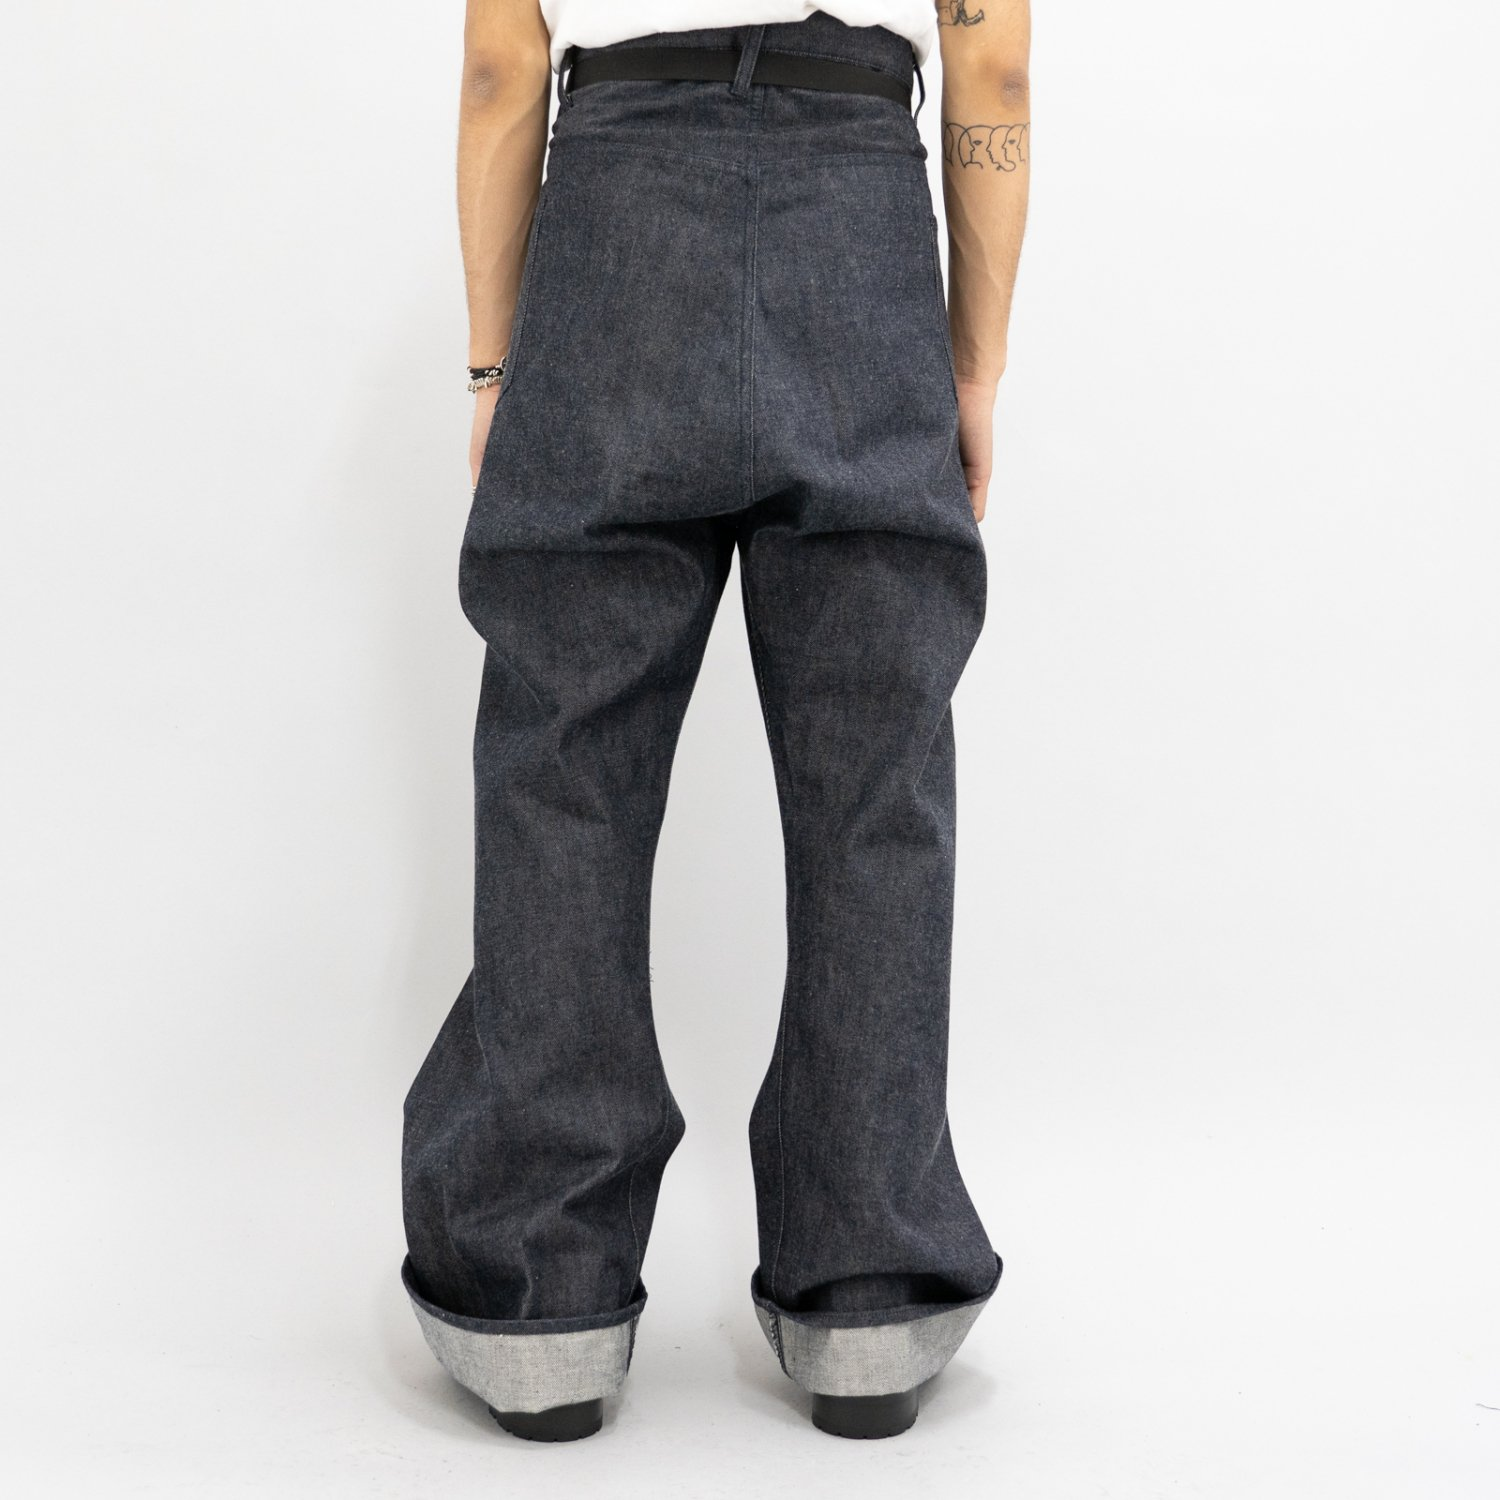 NORITAKE/HARADA * Denim Pants 58inch Medium